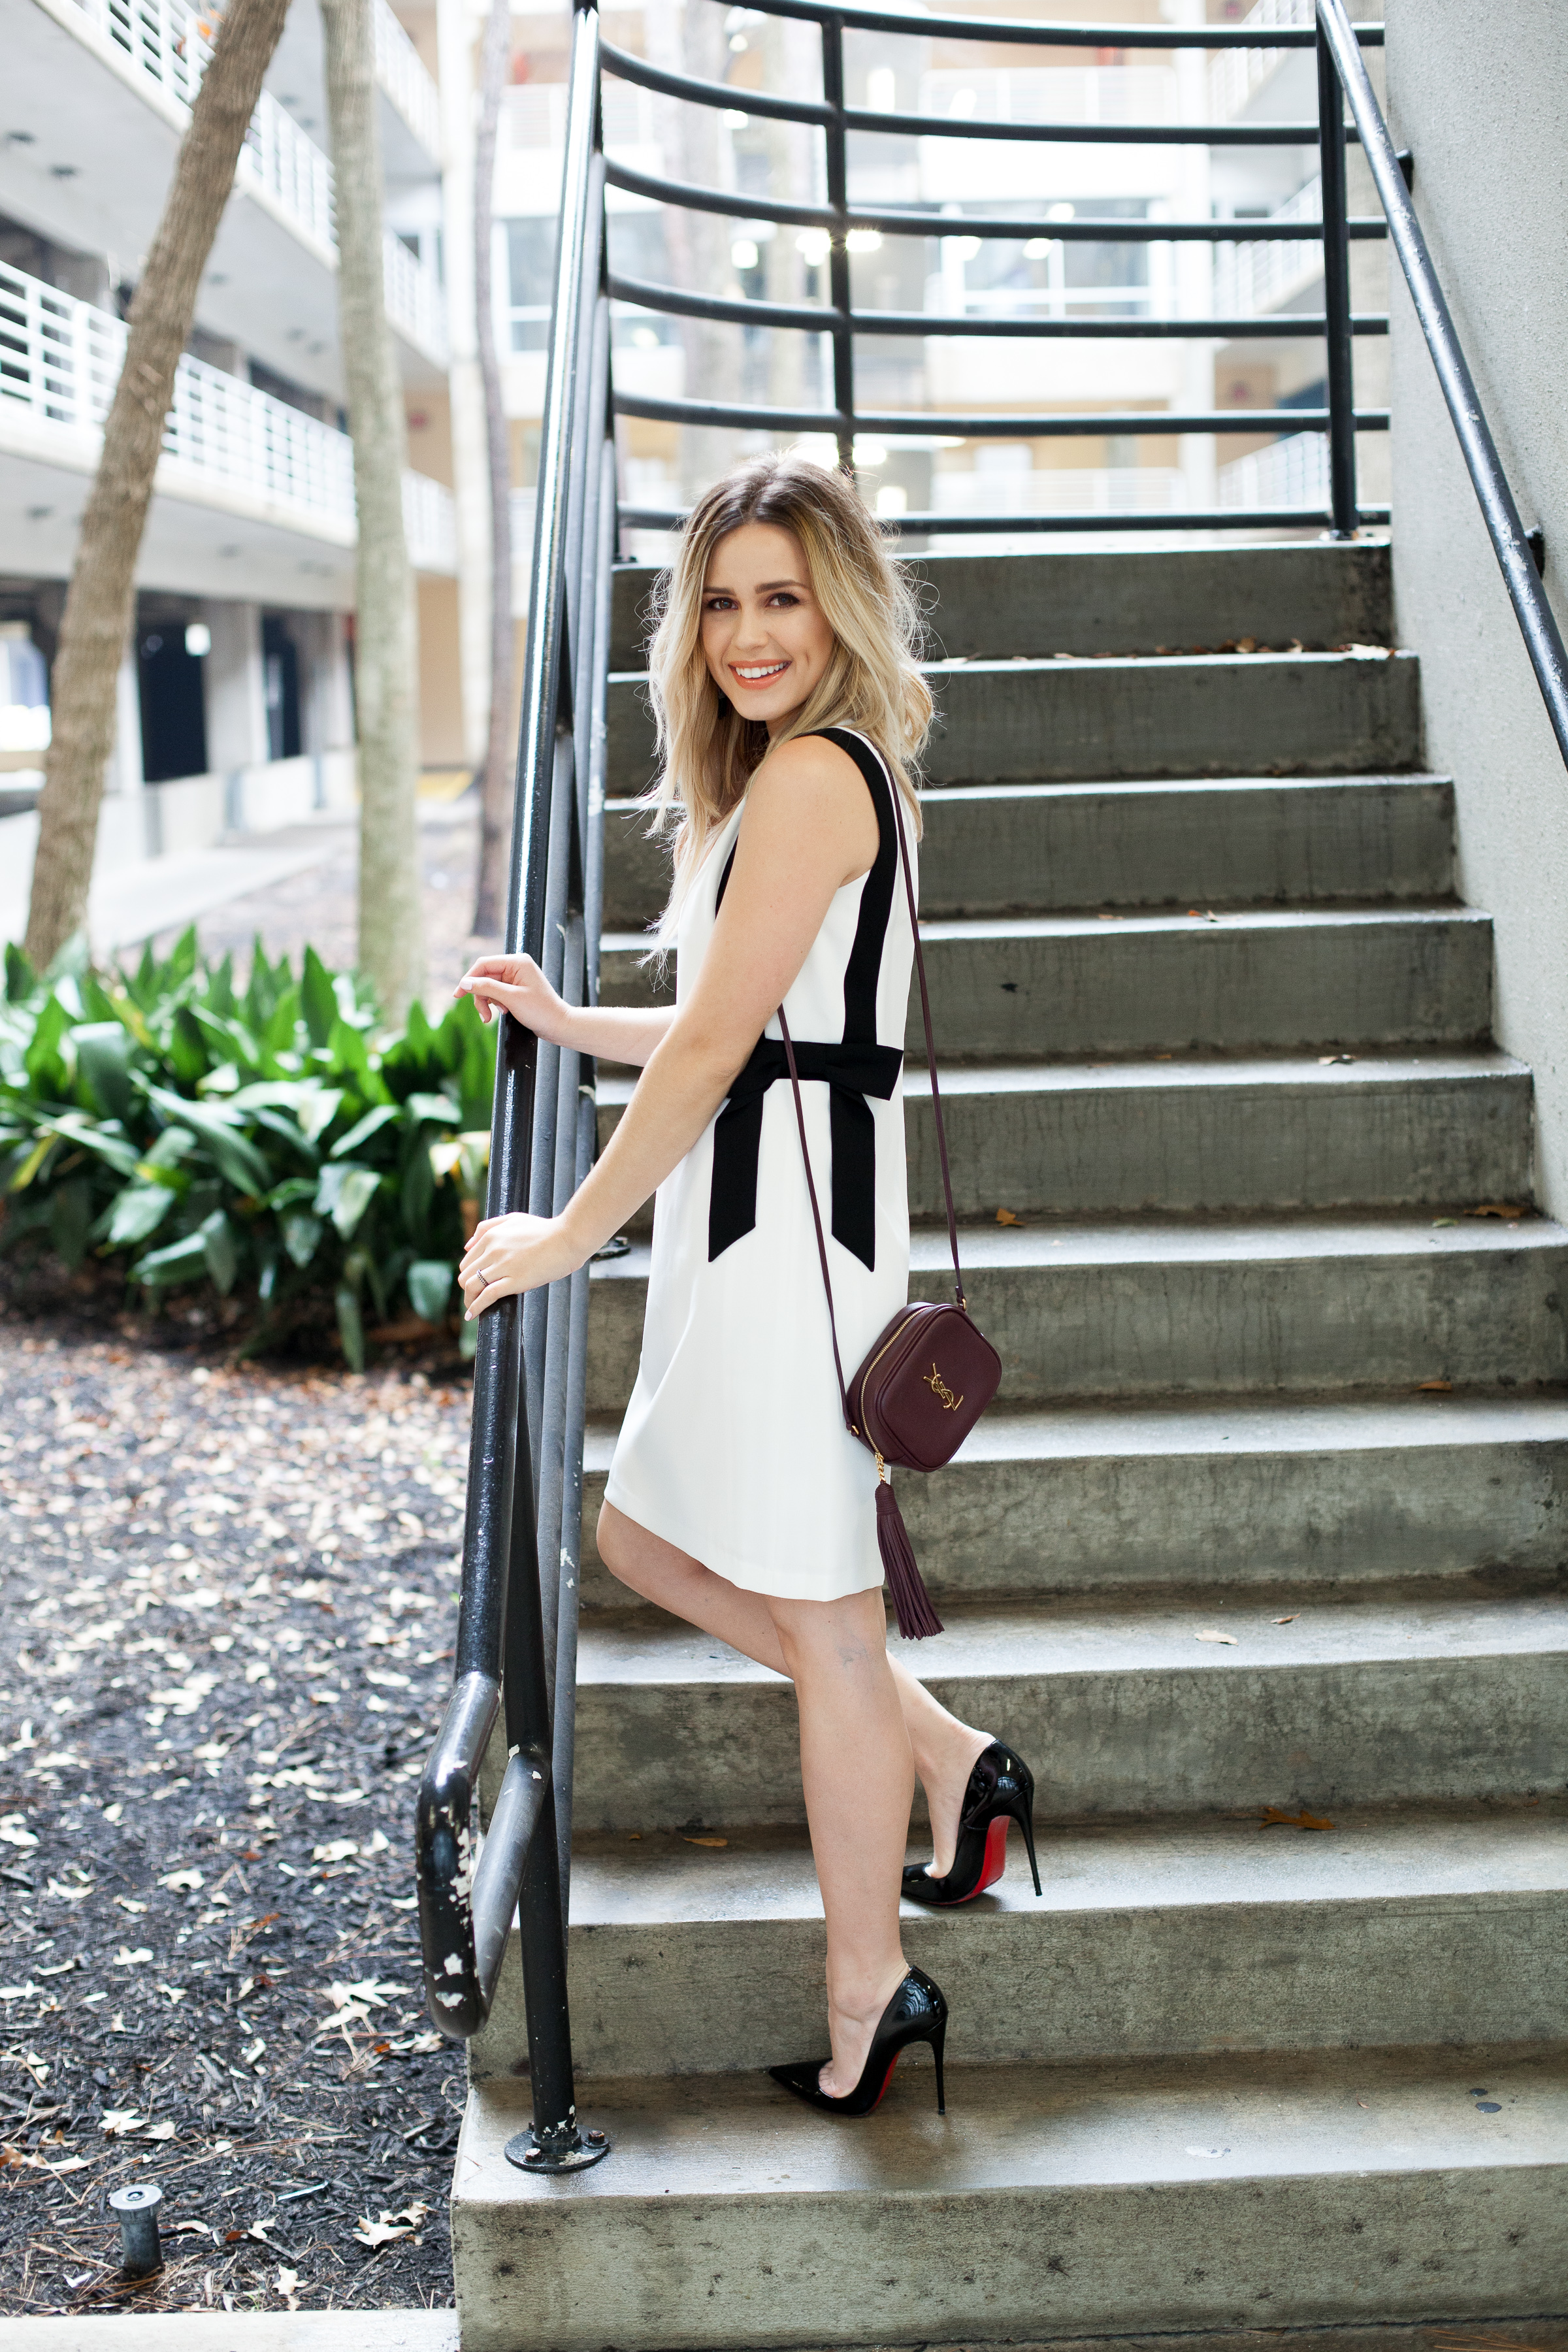 Houston fashion blogger Uptown with Elly Brown shares her tips and tricks on How To Get Ready For A Date Night. Click here for more!